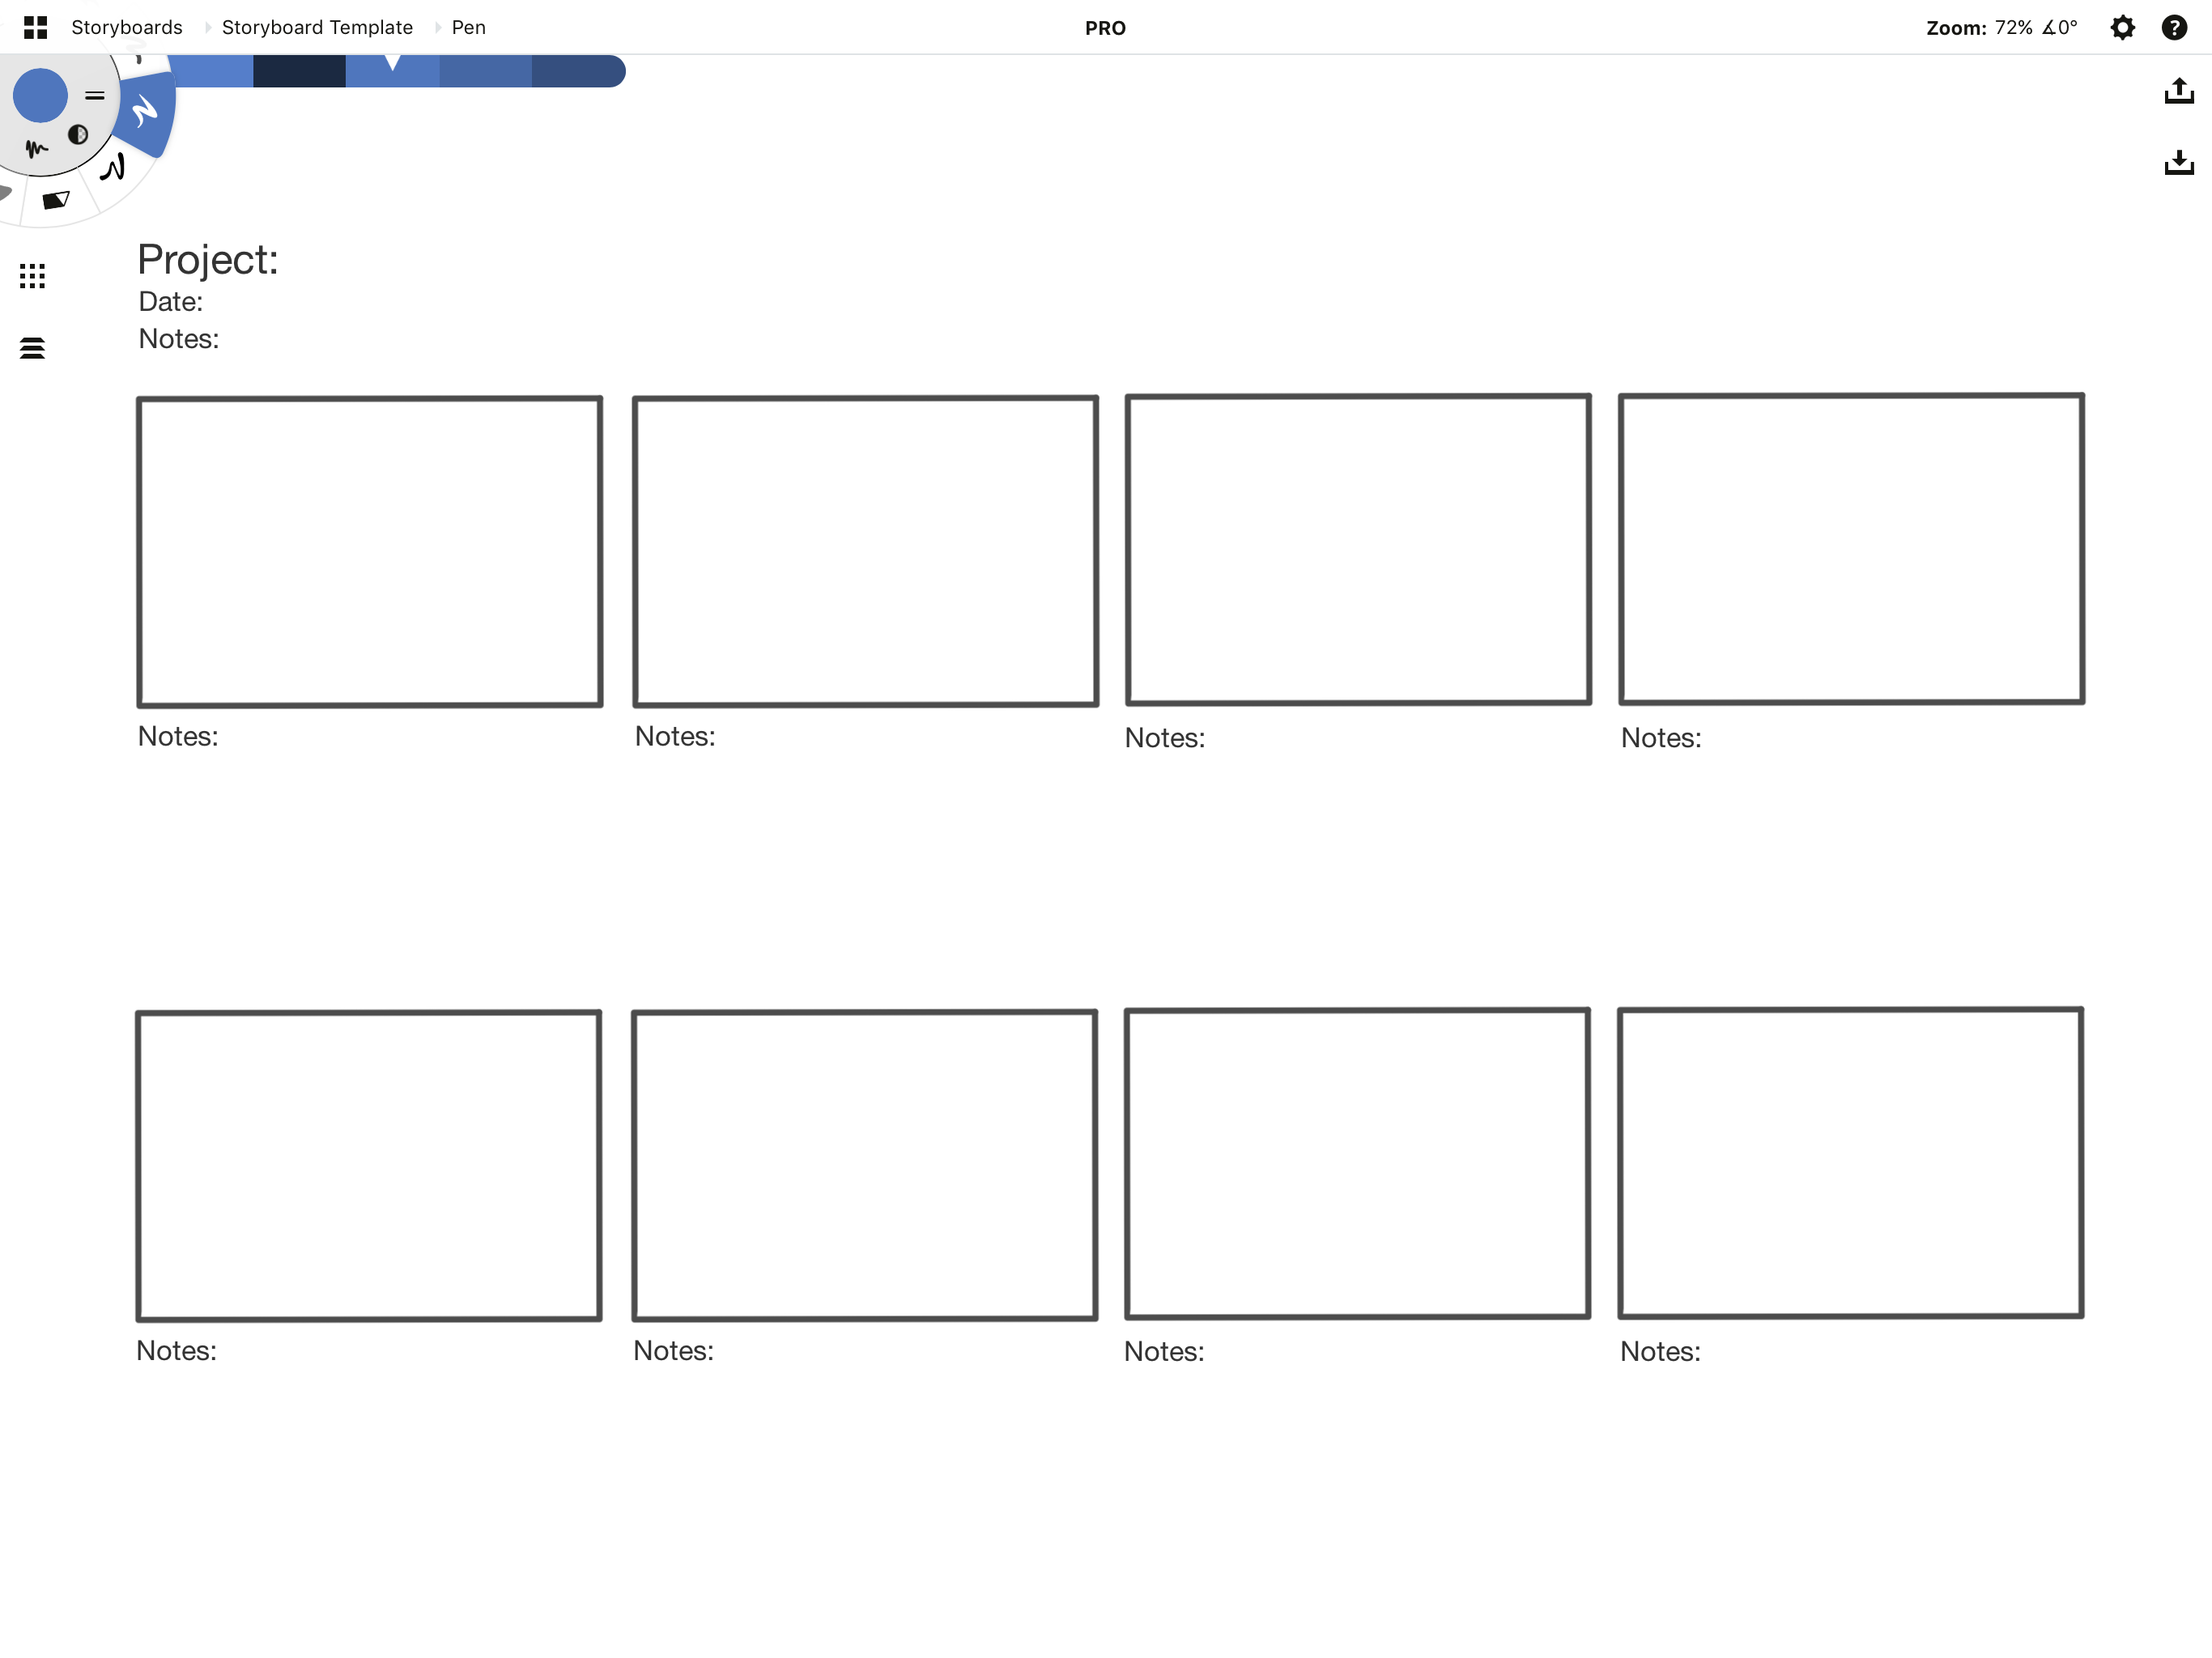 templates_storyboardtemplate.PNG